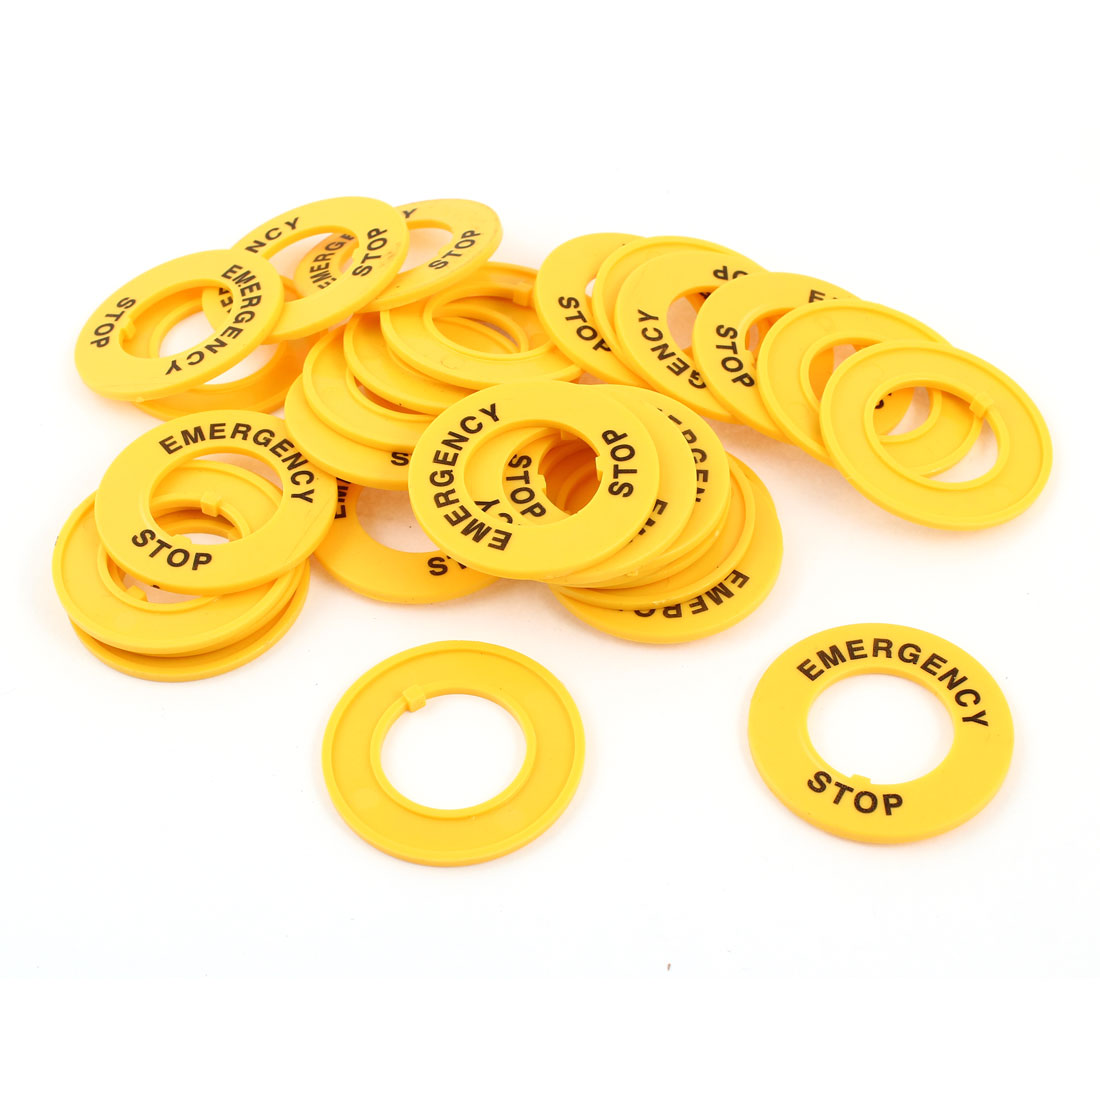 30 Pcs Yellow Emergency Stop Pattern 22mm Cutout Buttonswitch Protective Shell Case